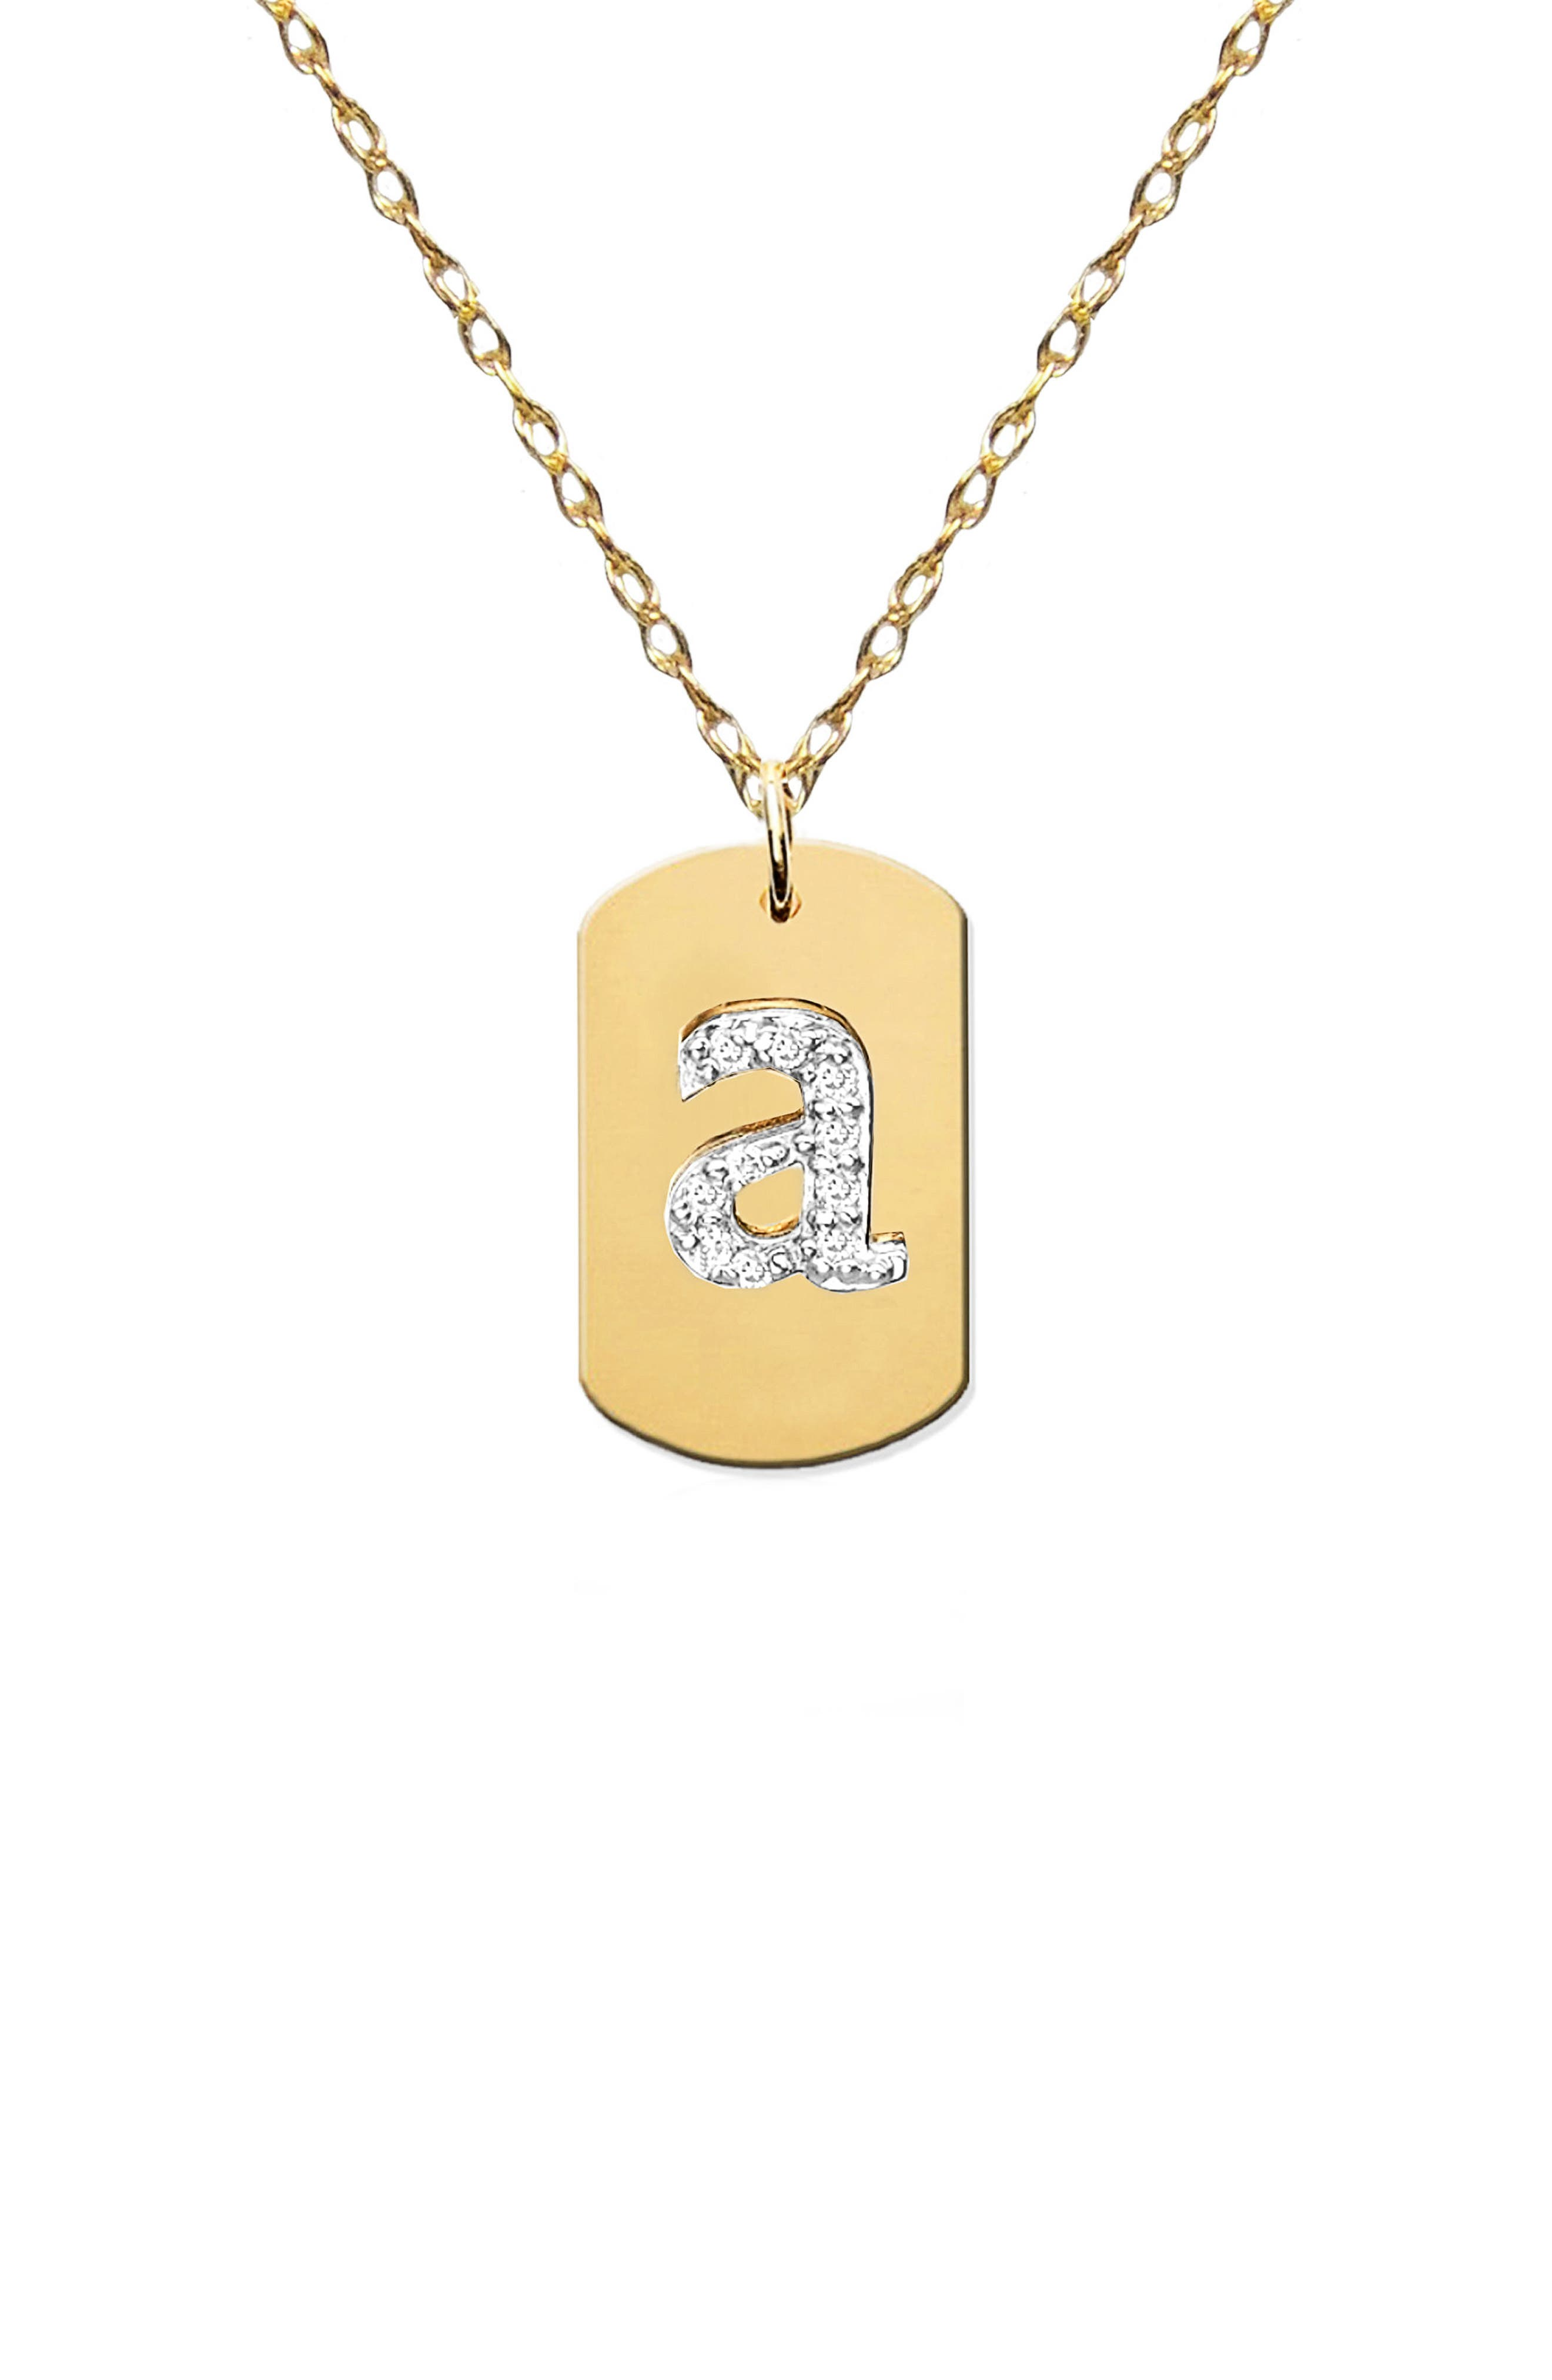 JANE BASCH DESIGNS Diamond Initial Dog Tag Necklace